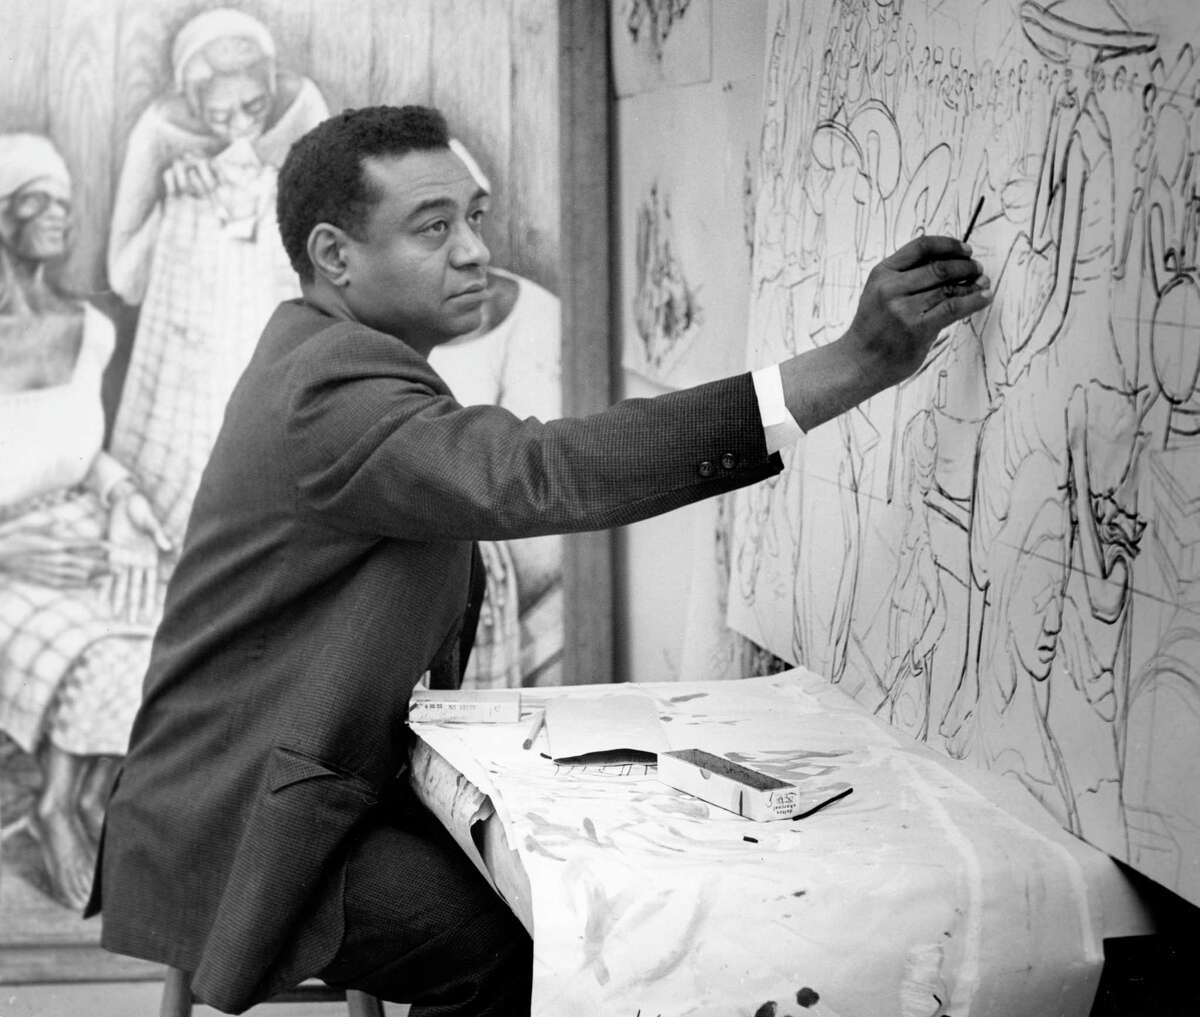 03/1962 - Dr. John Biggers draws in his studio. He also teaches at Texas Southern University. His current projects include: creation of murals, mosaics and sculpture for the school's buildings and preparation of a short historical survey of West African bronzes.